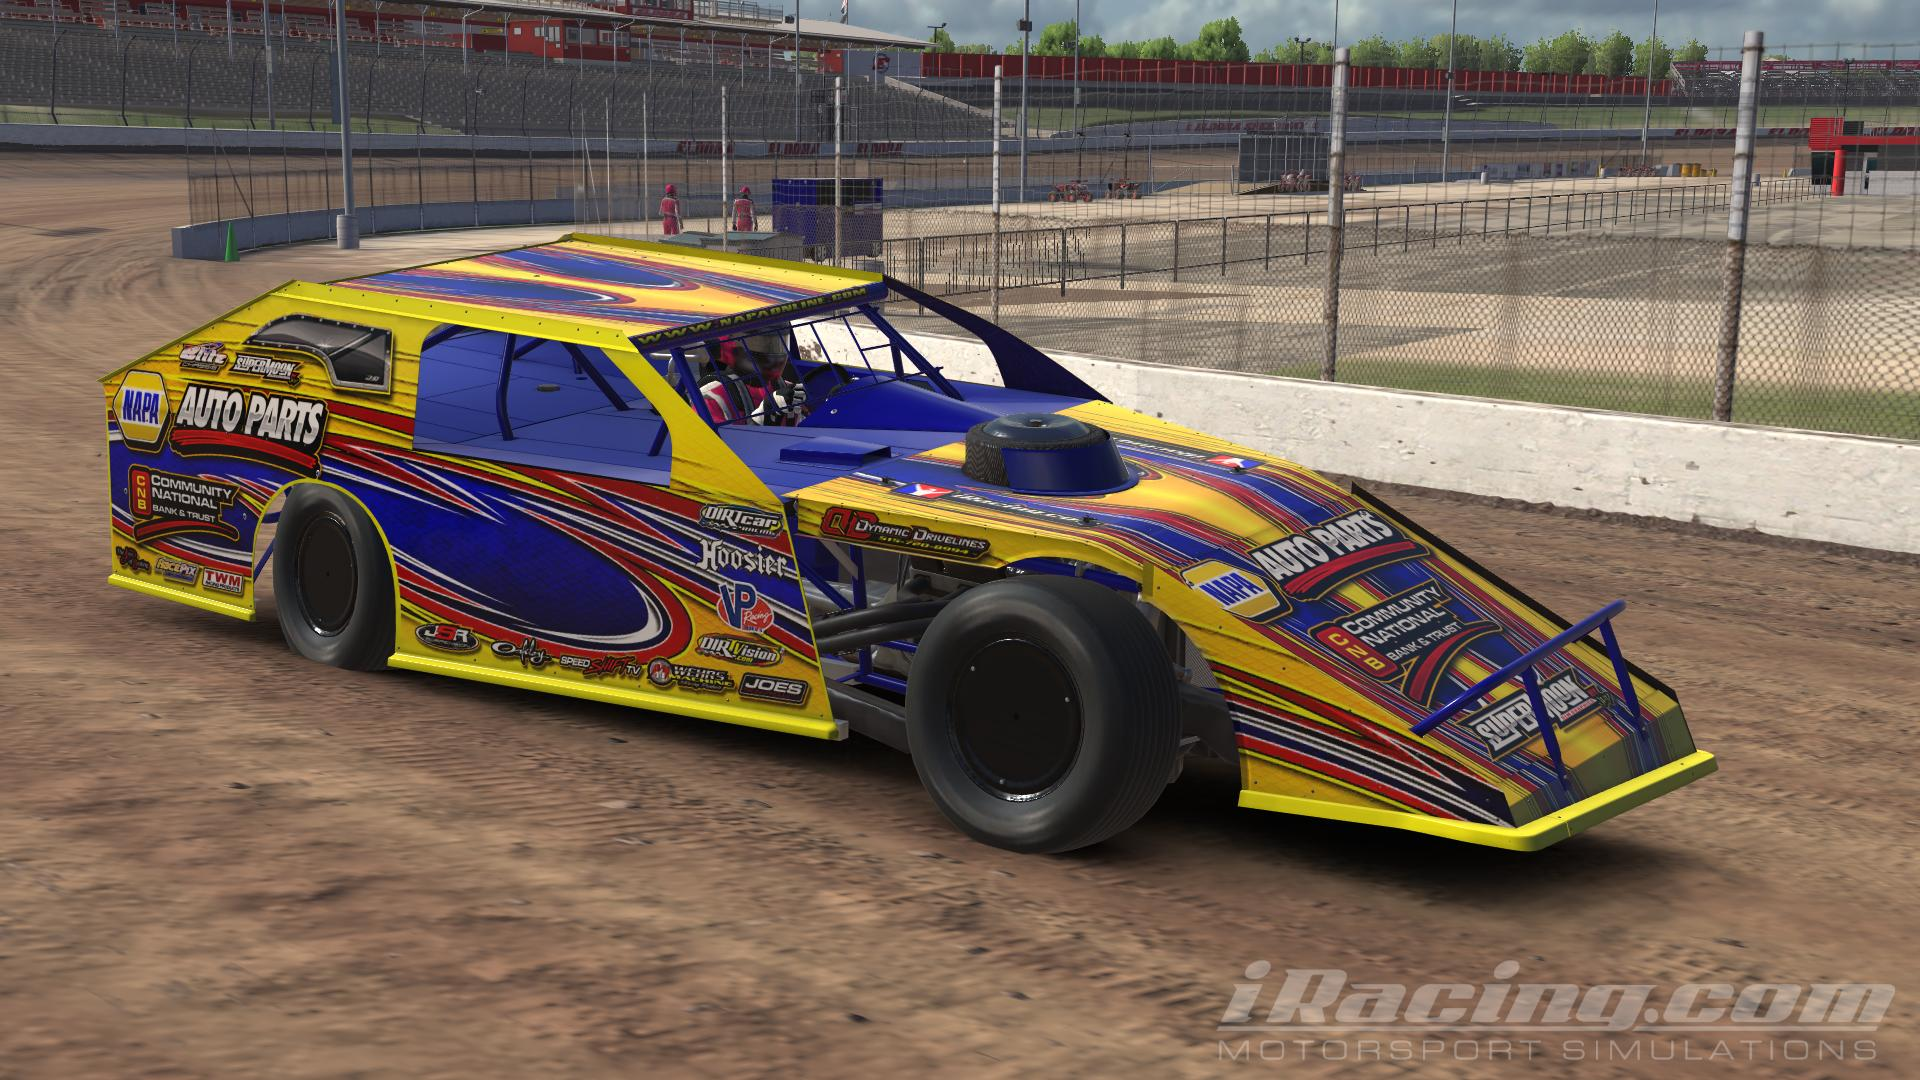 Preview of car 71245 Napa by Jerry Hockett